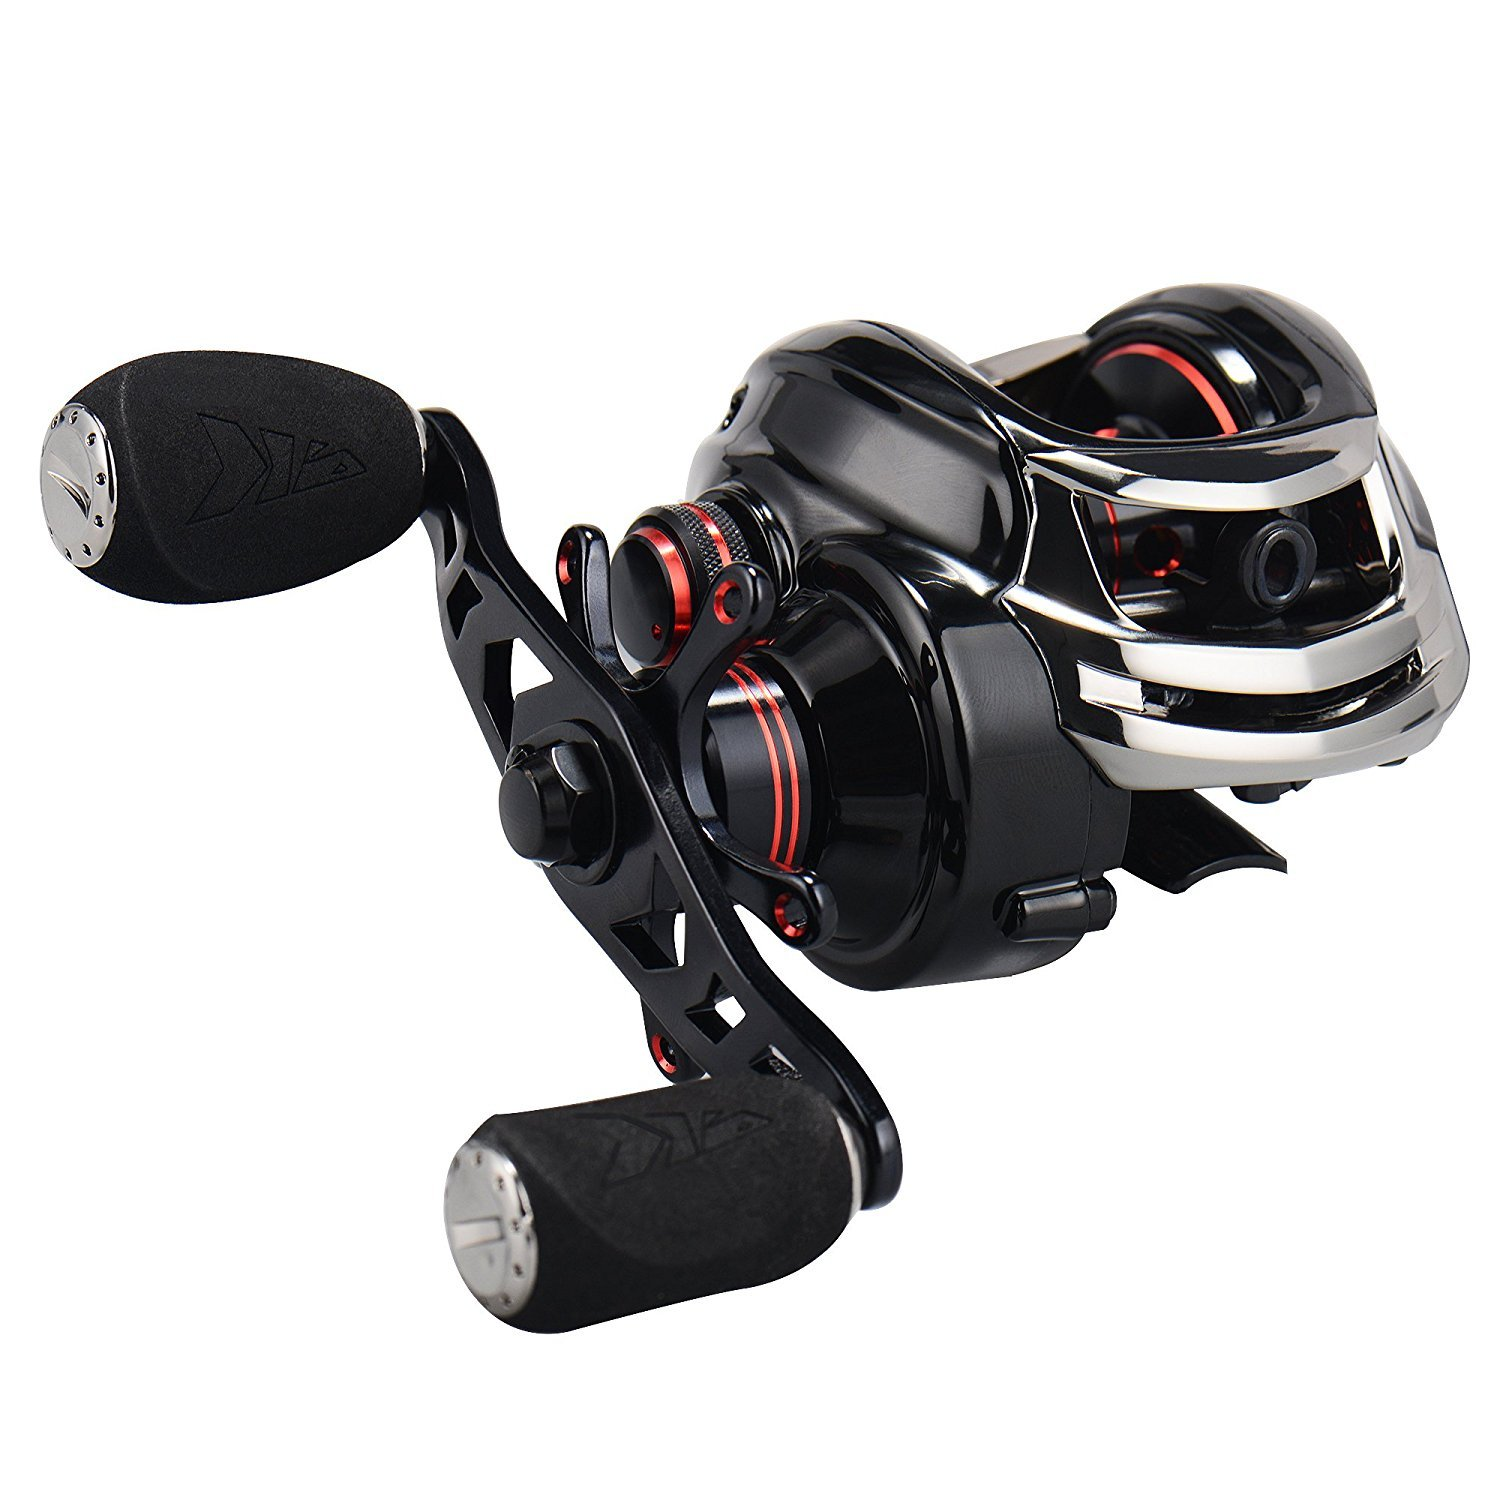 Kastking Whitemax Best Baitcasting Reel Under $100